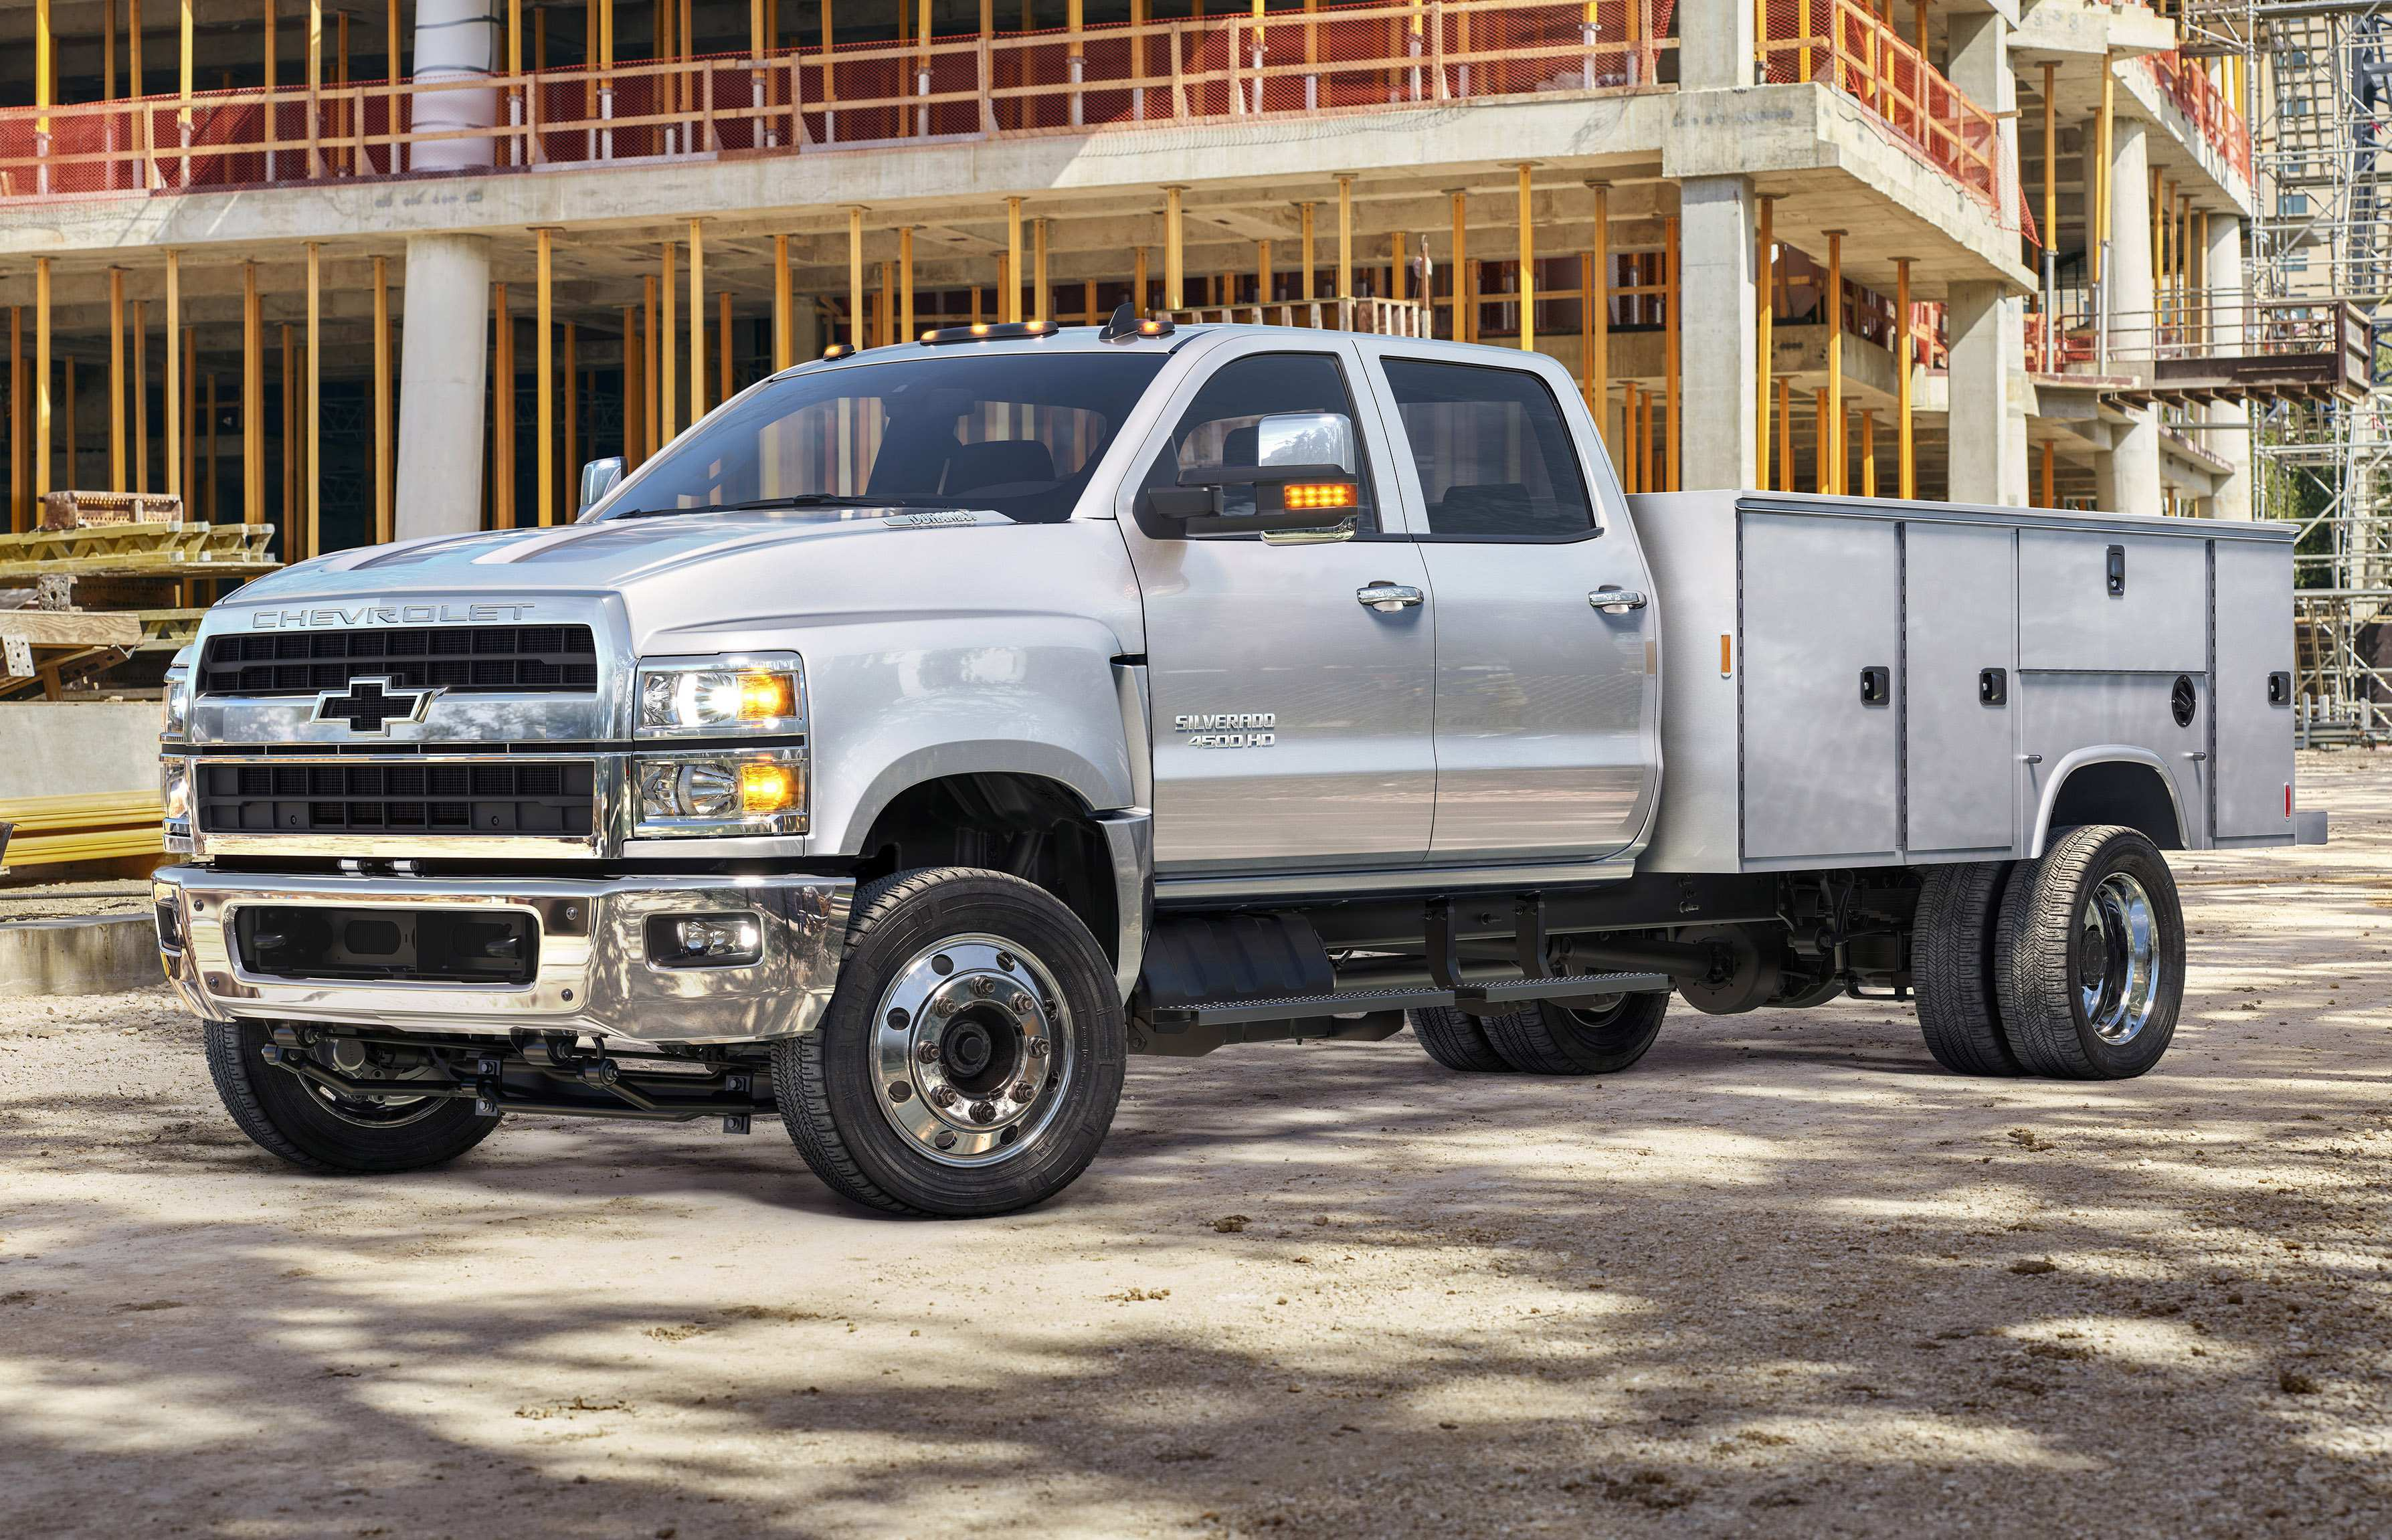 79 The Best 2020 Silverado 1500 Interior